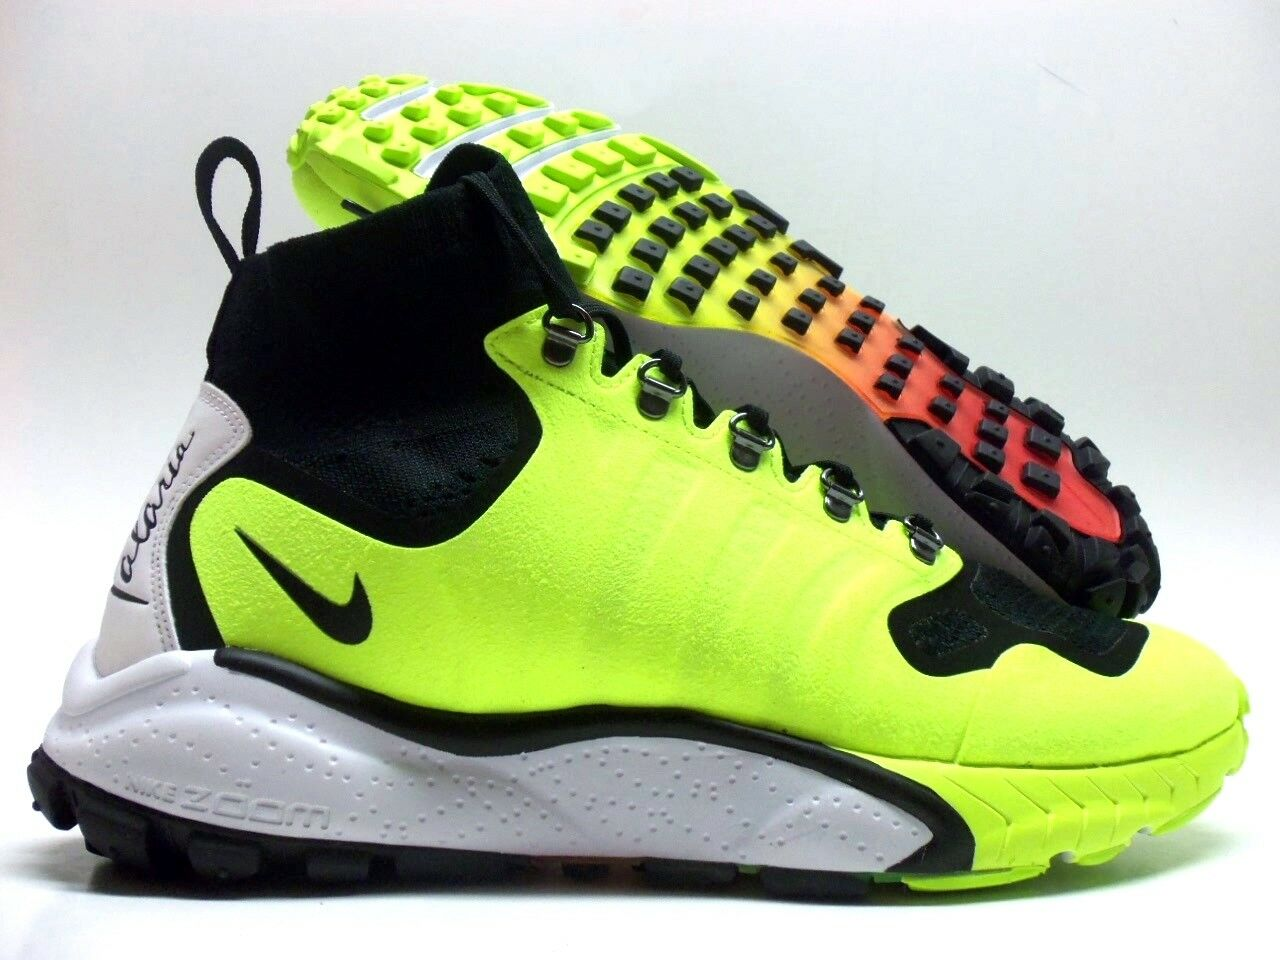 NIKE ZOOM TALARIA MID FK LAB BLACK VOLT-WHITE SIZE MEN'S 9.5 [856955-007]